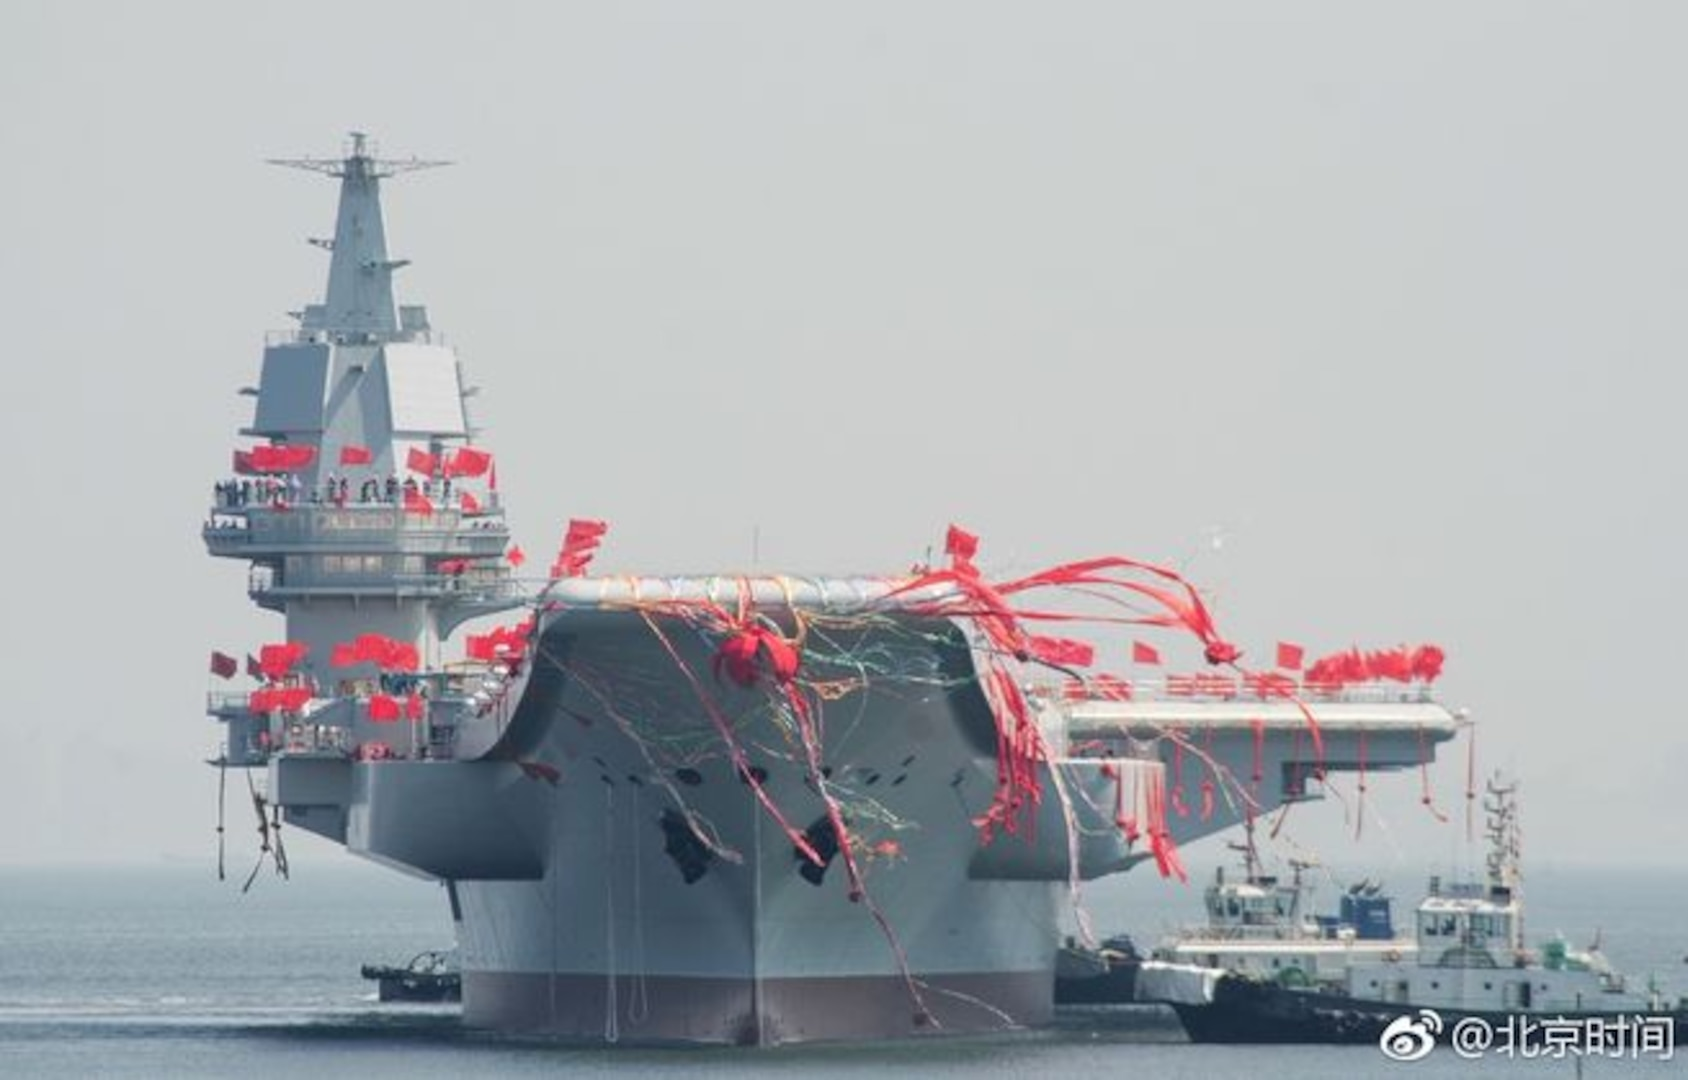 The Type 001A aircraft carrier, launched on April 26, 2017 in Dalian, China, is an improved variant of the Soviet designed Kuznetsov class.